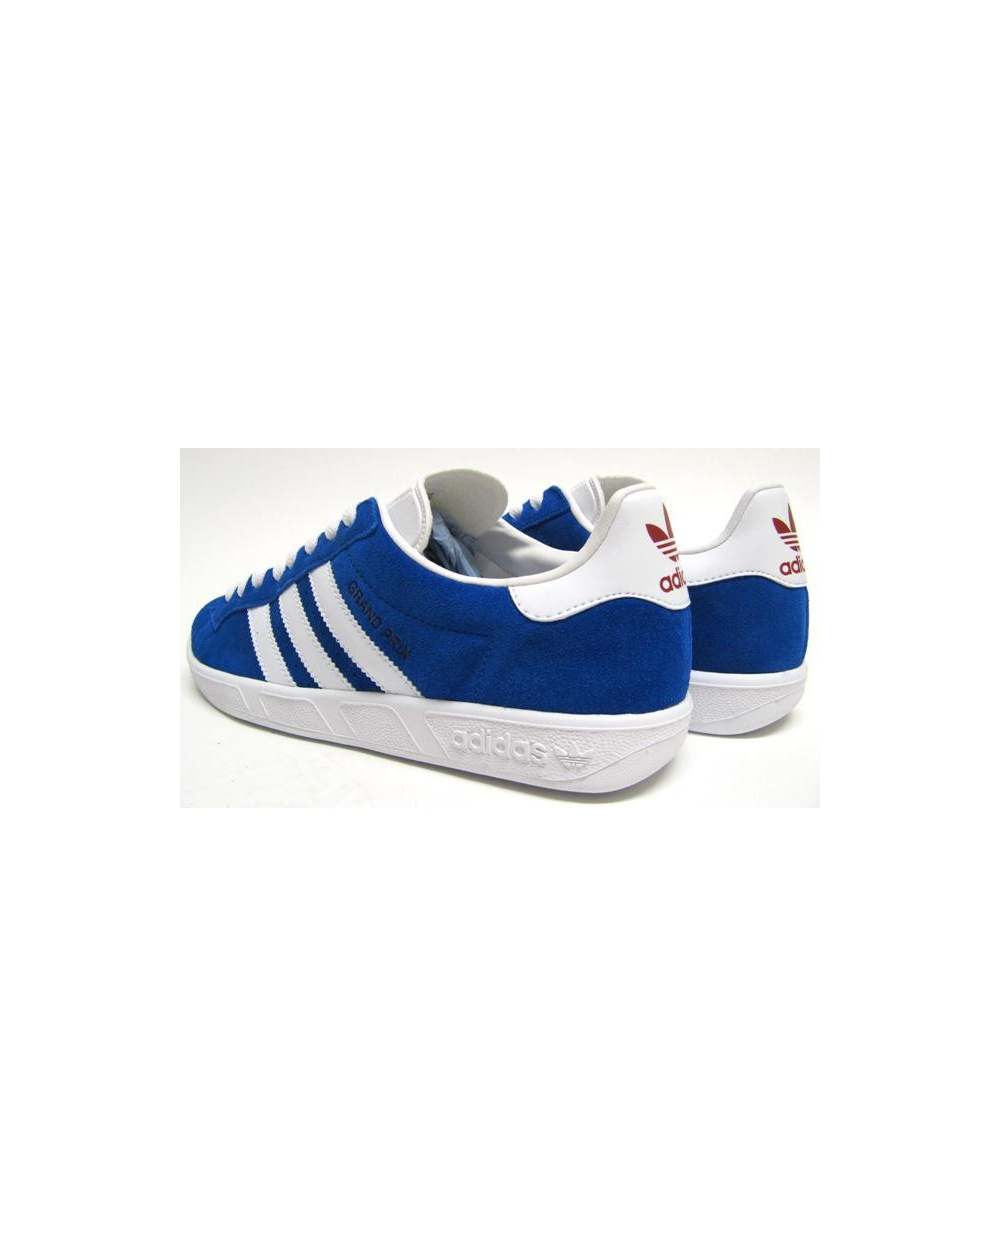 Adidas Grand Prix Trainers Royal Blue White Originals